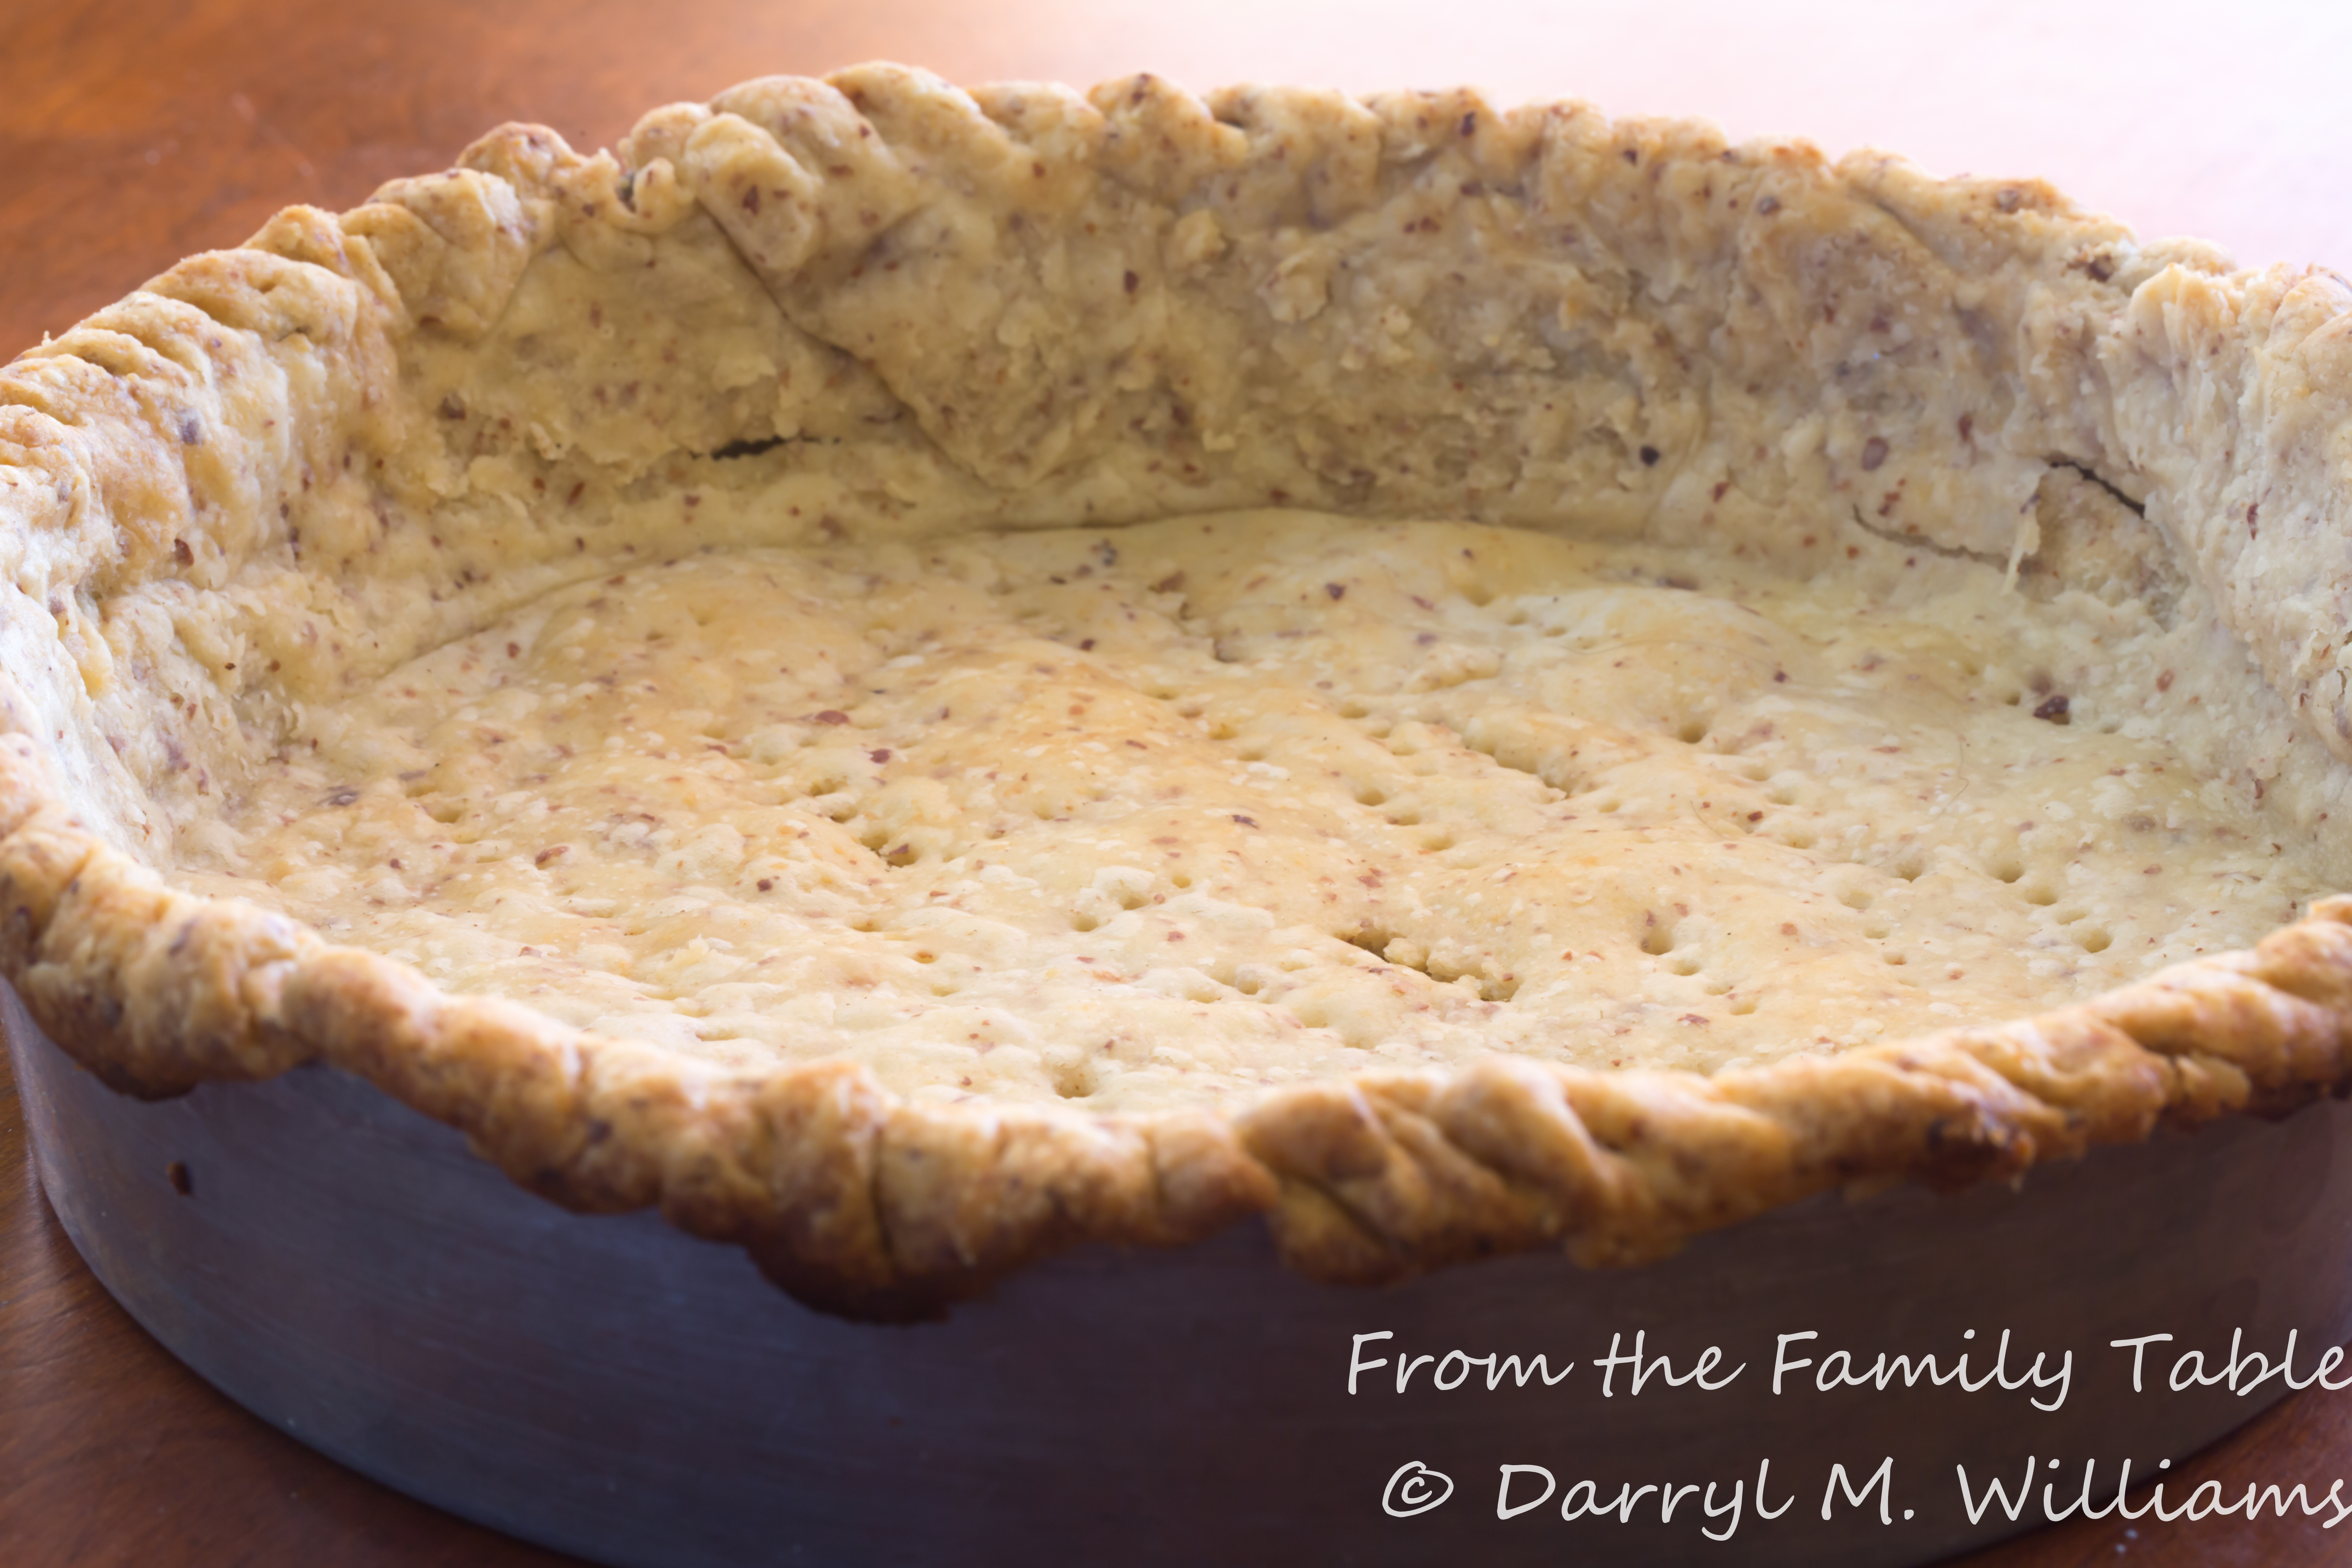 MEYER LEMON BAVARIAN CREAM PIE | From the Family Table